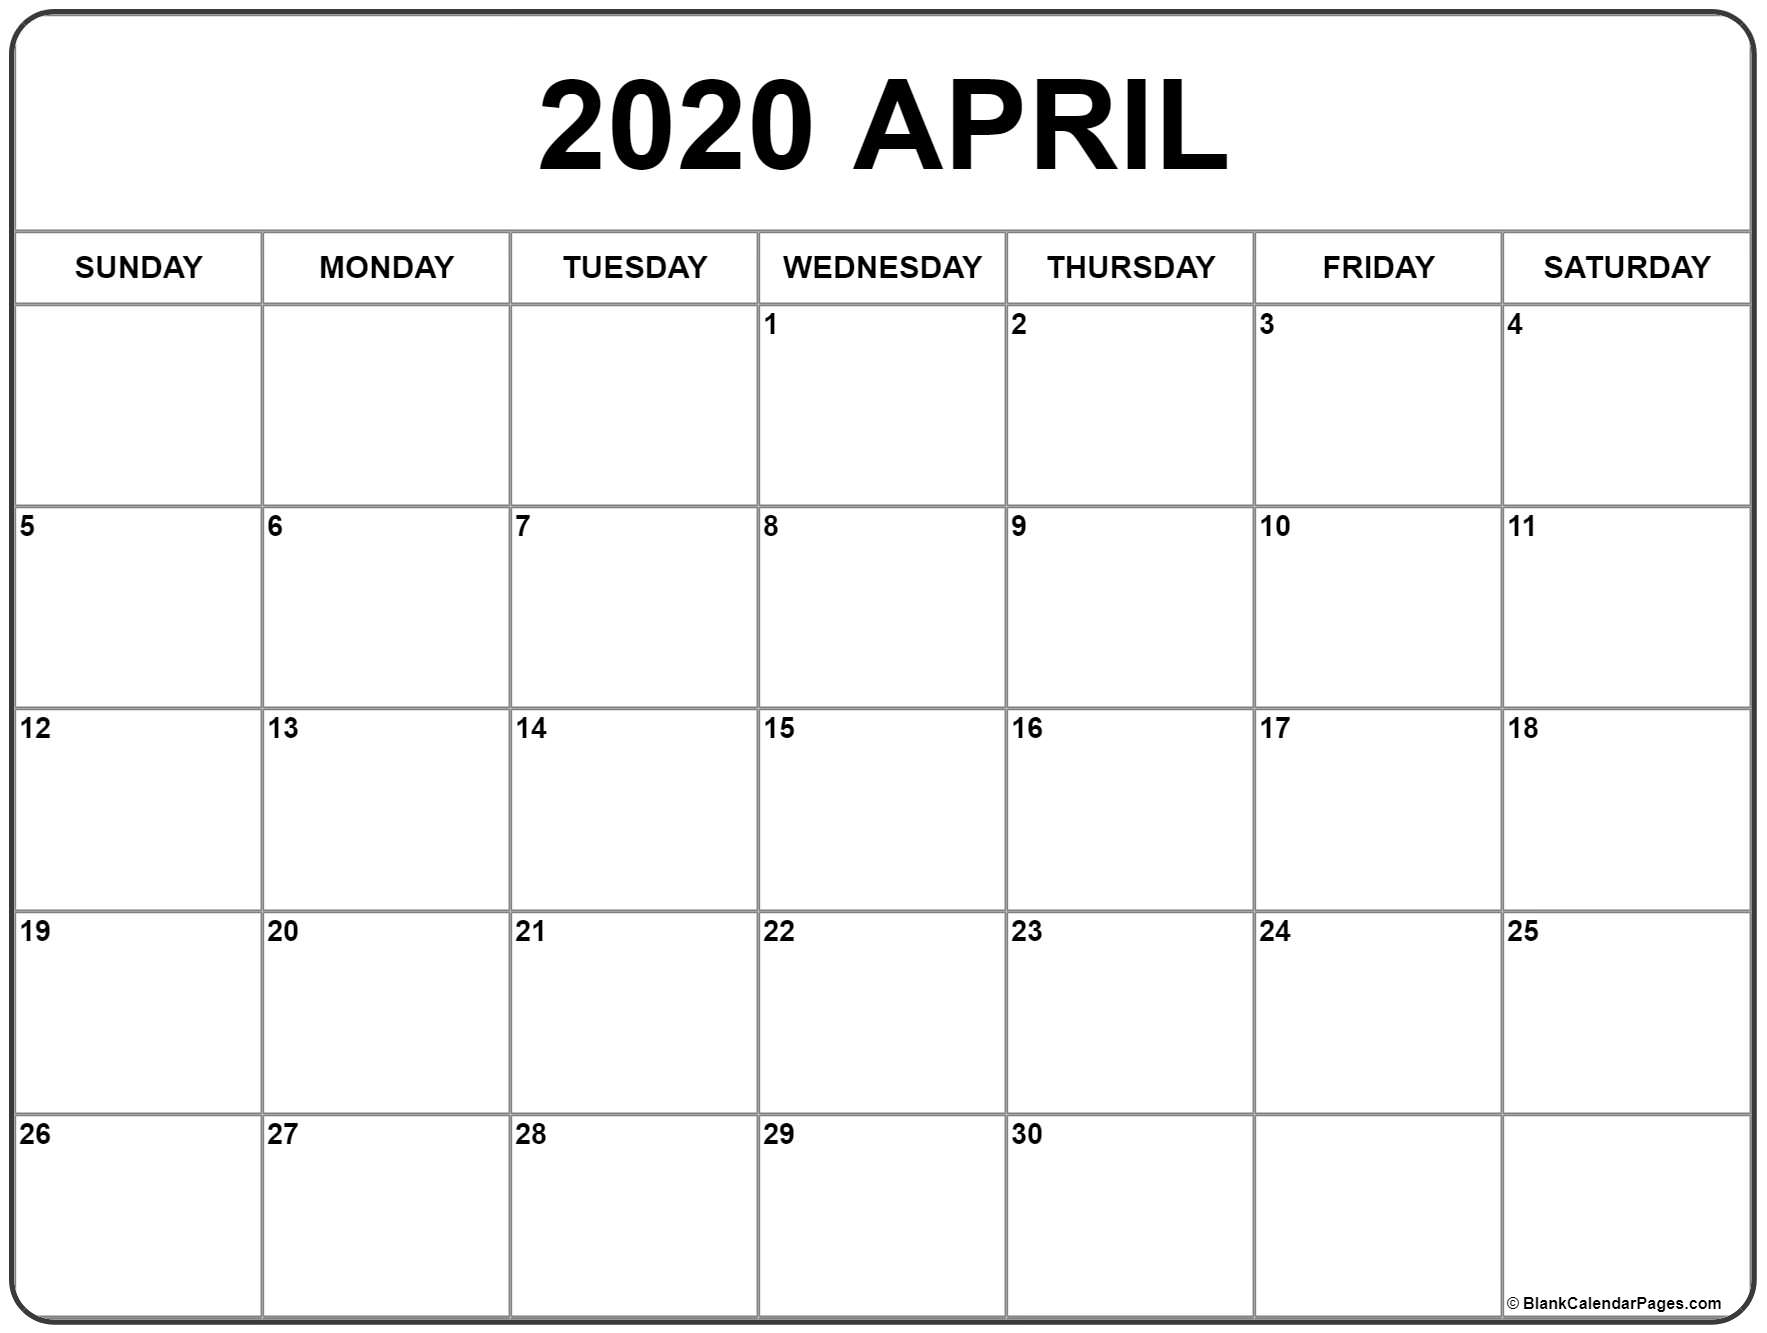 April 2020 Calendar Space Note